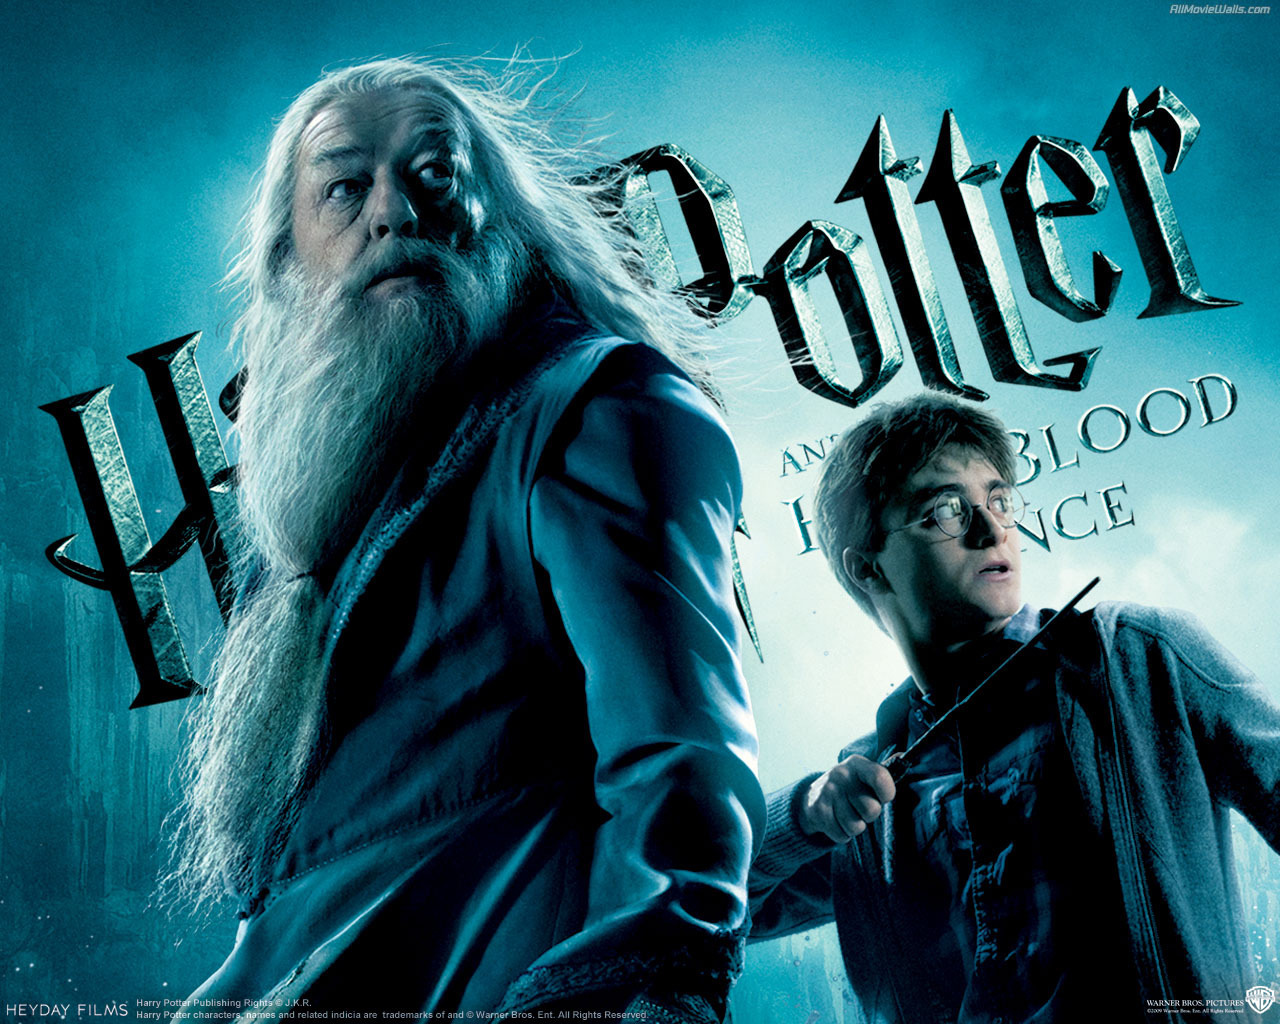 harry potter series pdf free download in english